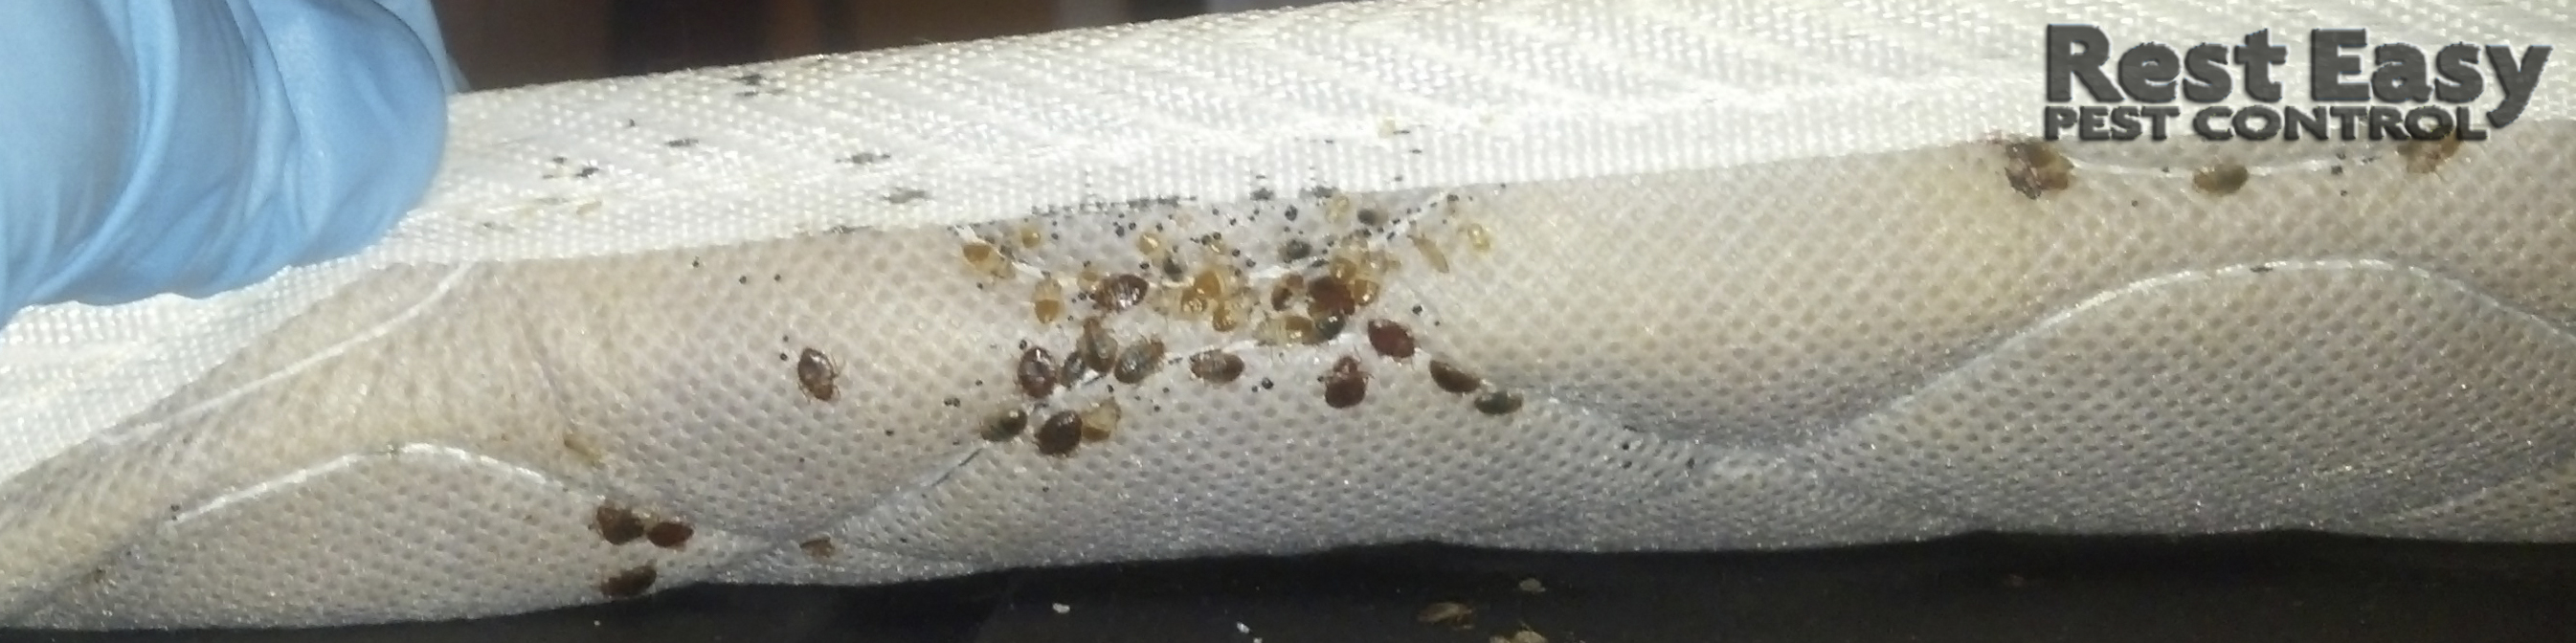 Pin on Bed Bug Pics!